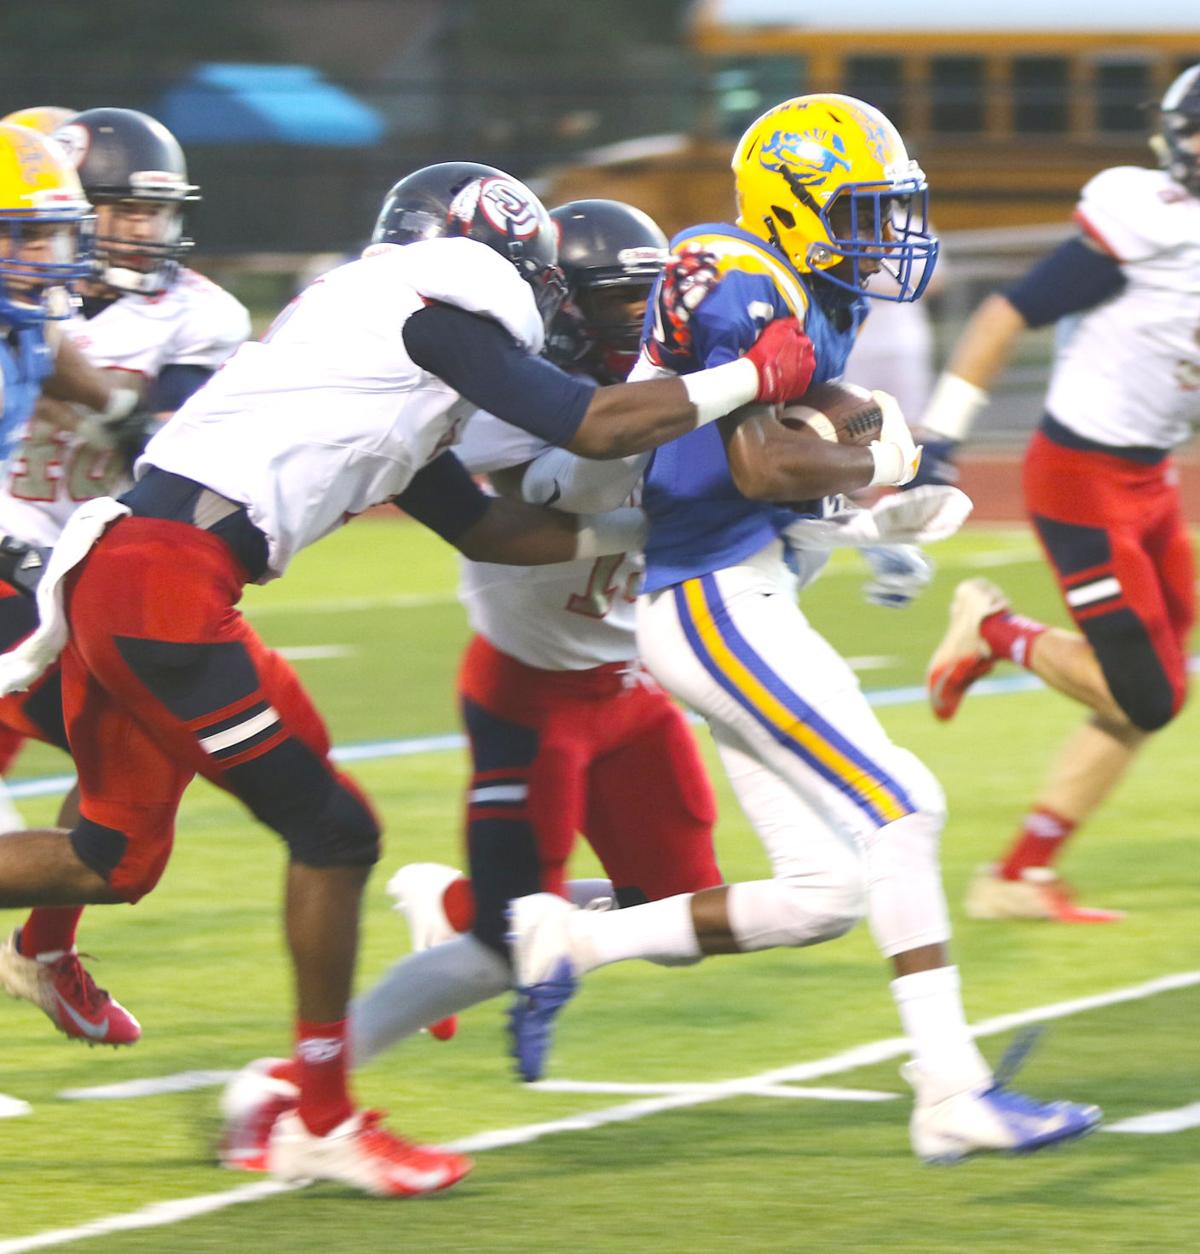 Bay High running back Max-well Lewis, right, is taken down by a pair of Braves. (Photo by Tyler Owen)